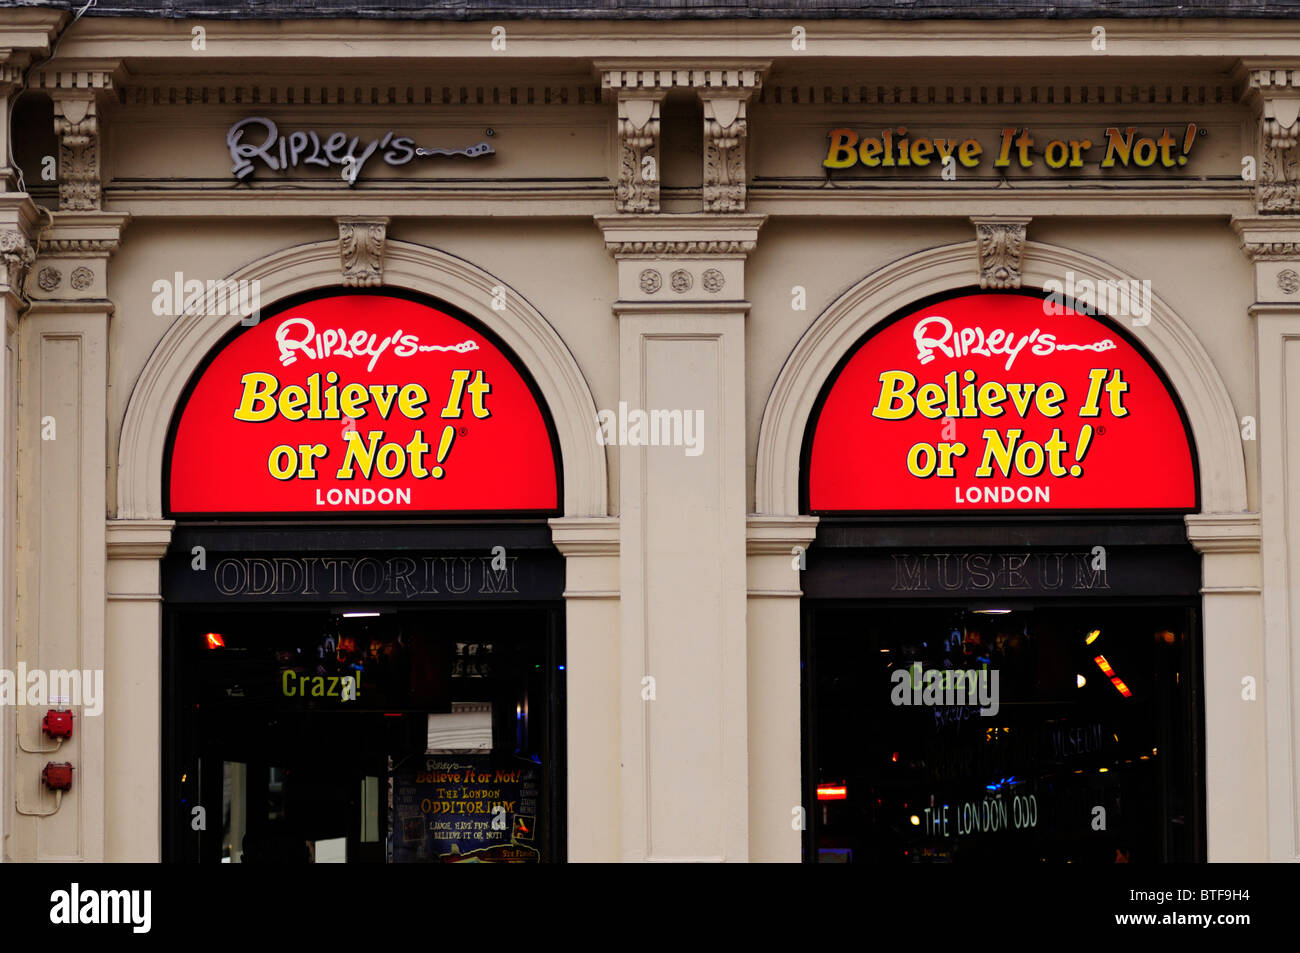 Ripleys Believe it or Not Odditorium Museum, Piccadilly Circus, London, England, UK - Stock Image